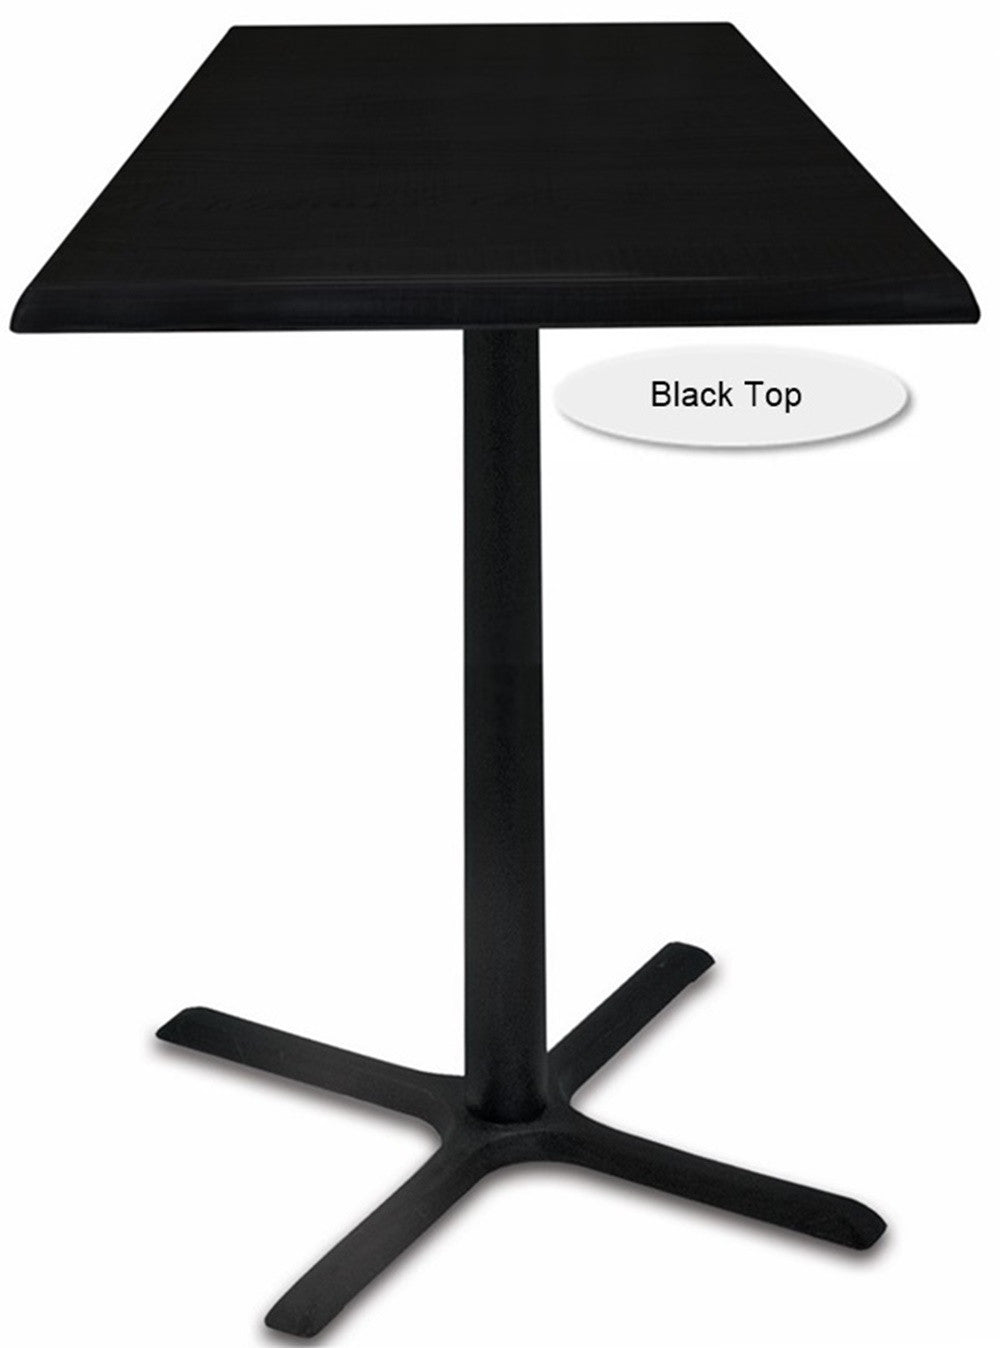 Black X-Base Square Indoor / Outdoor Table - Black Top